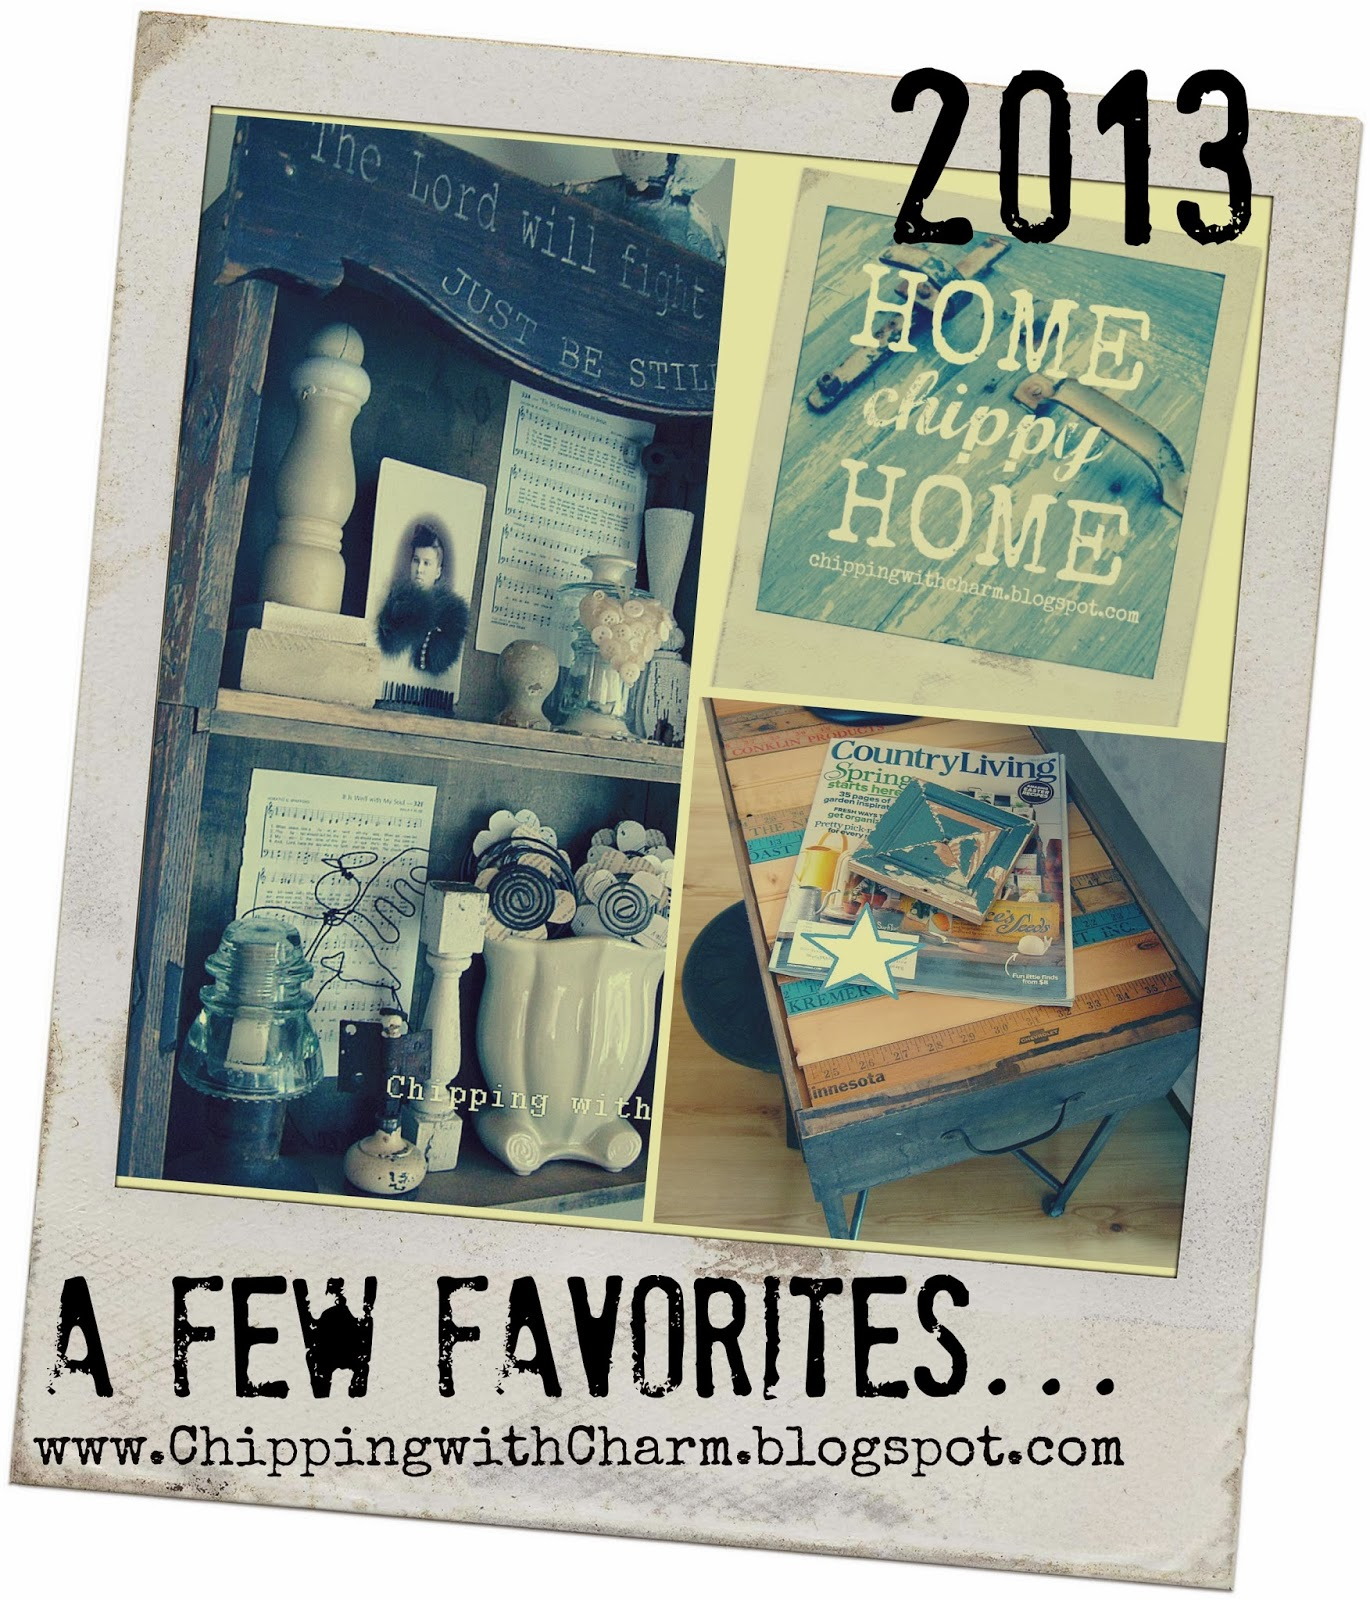 Chipping with Charm:  Top 3 Posts 2013...http://www.chippingwithcharm.blogspot.com/